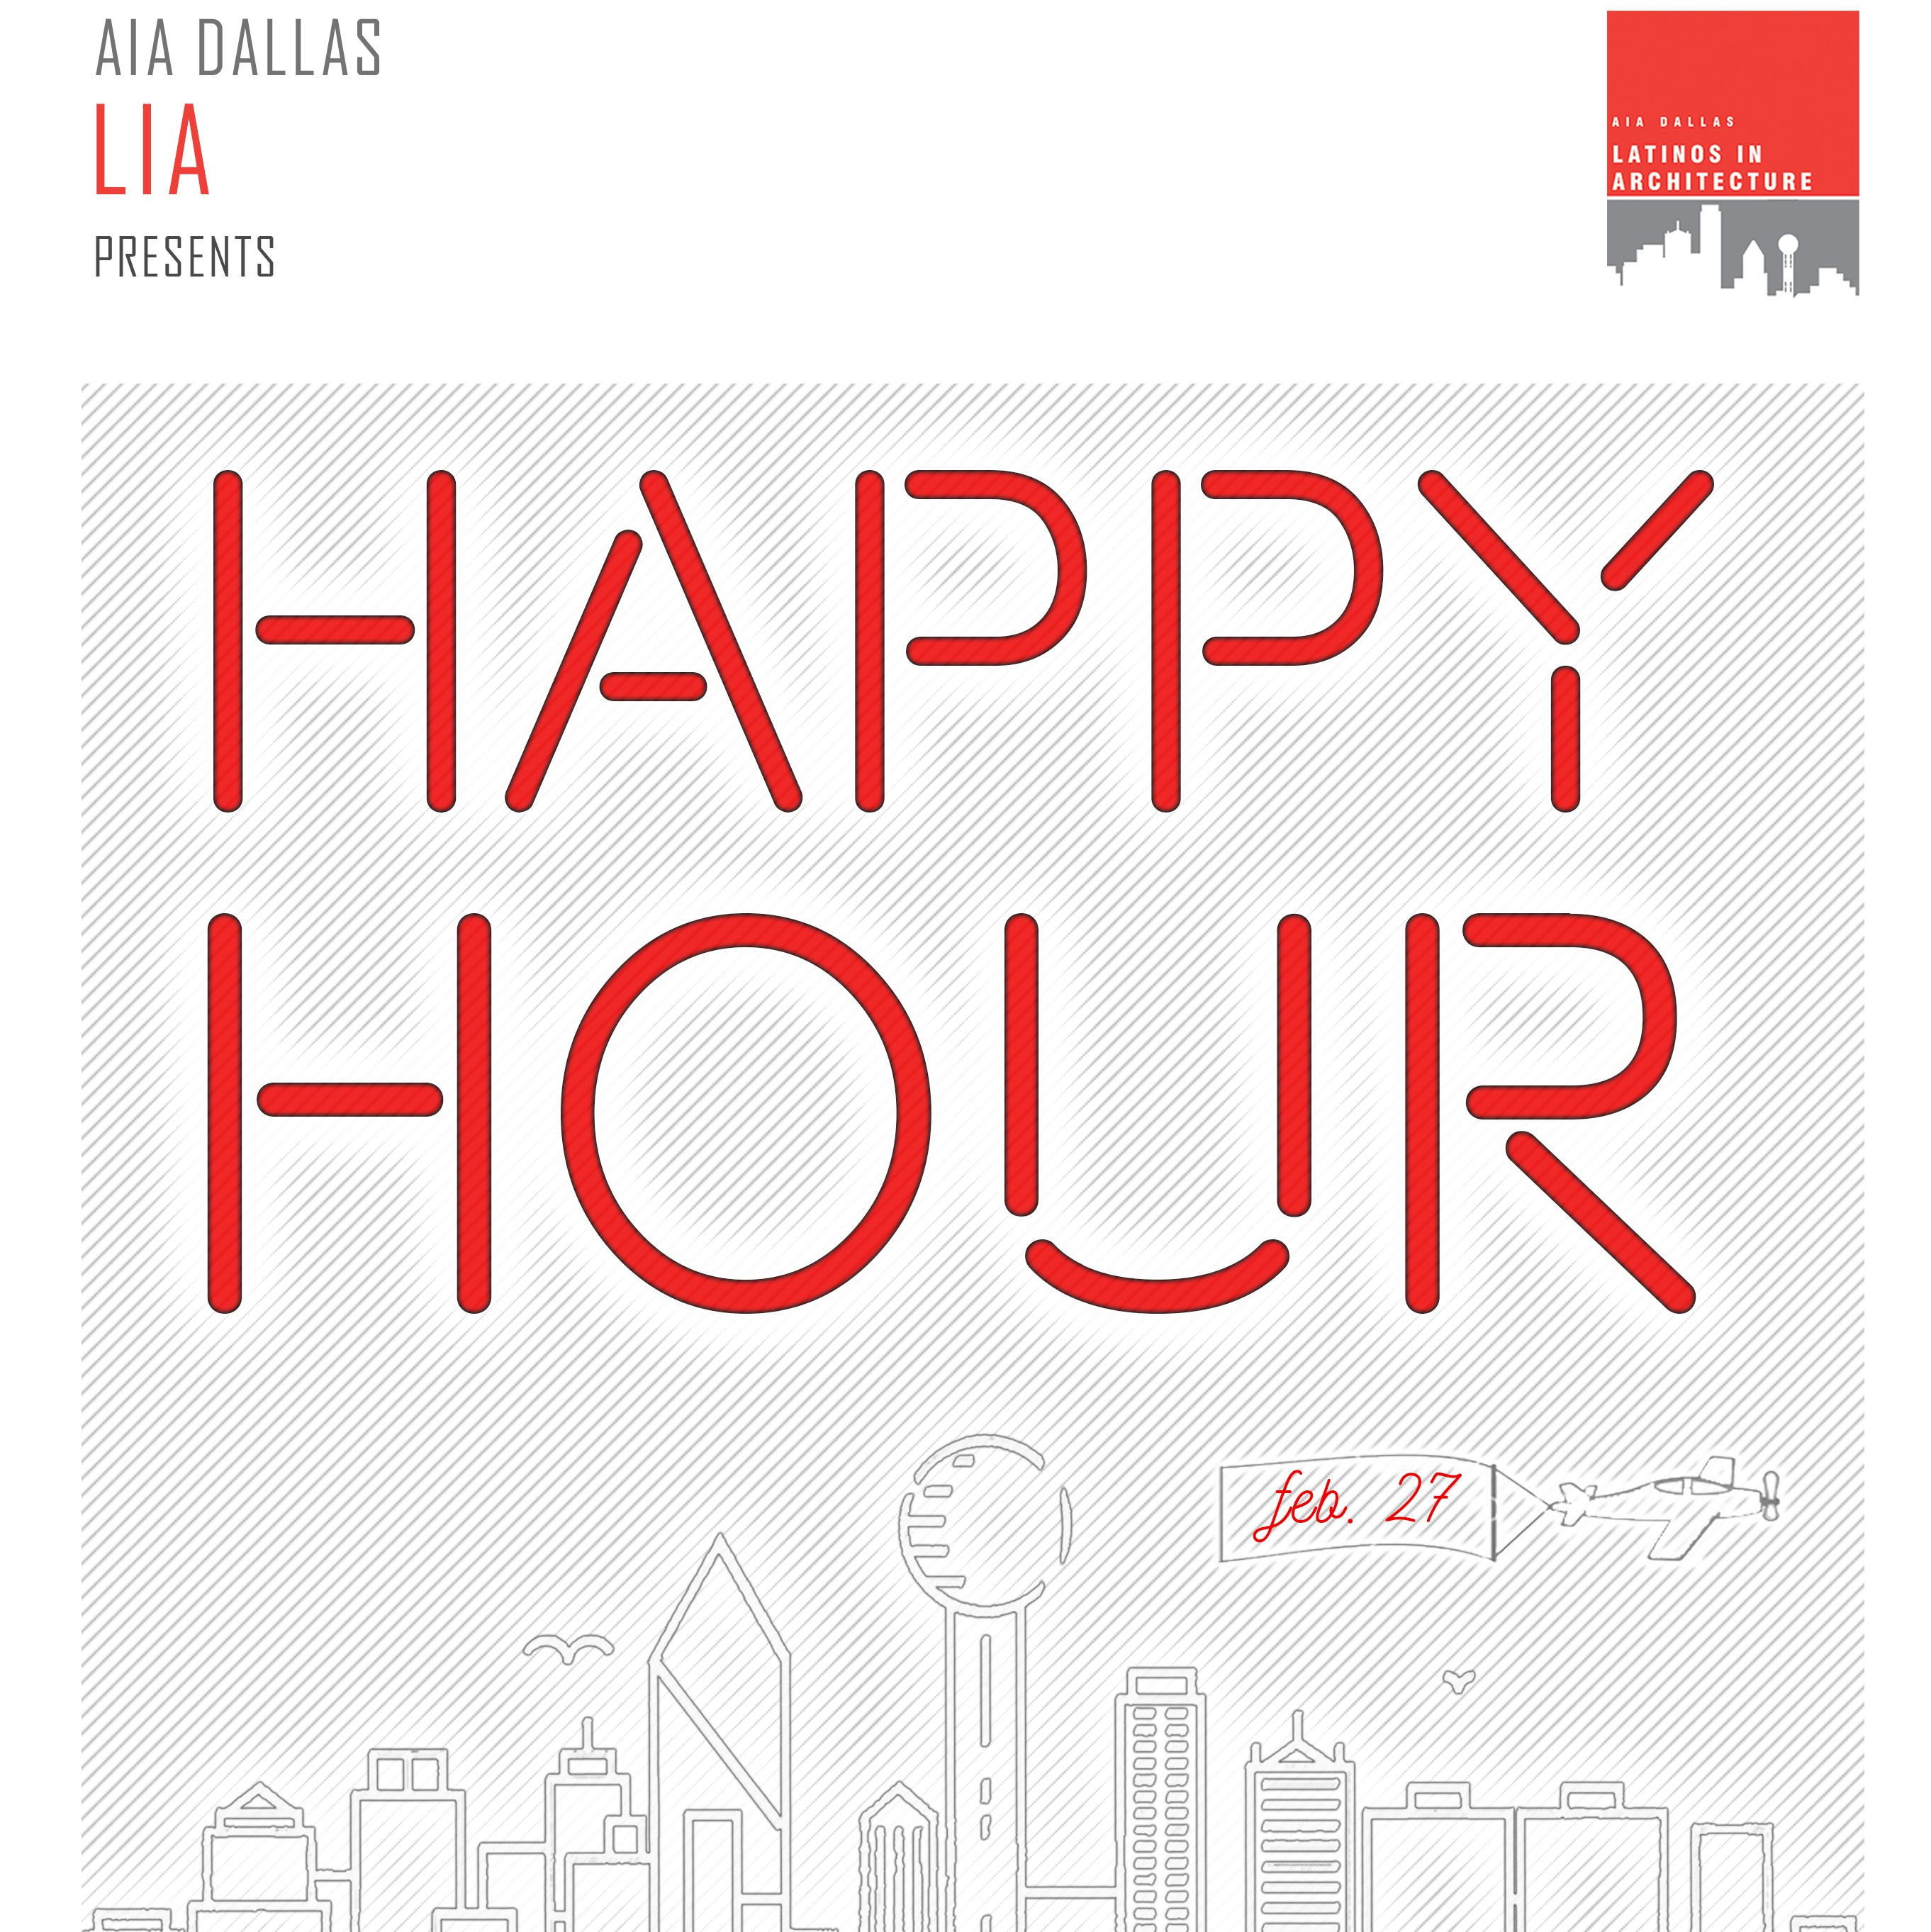 Latinos in Architecture Happy Hour